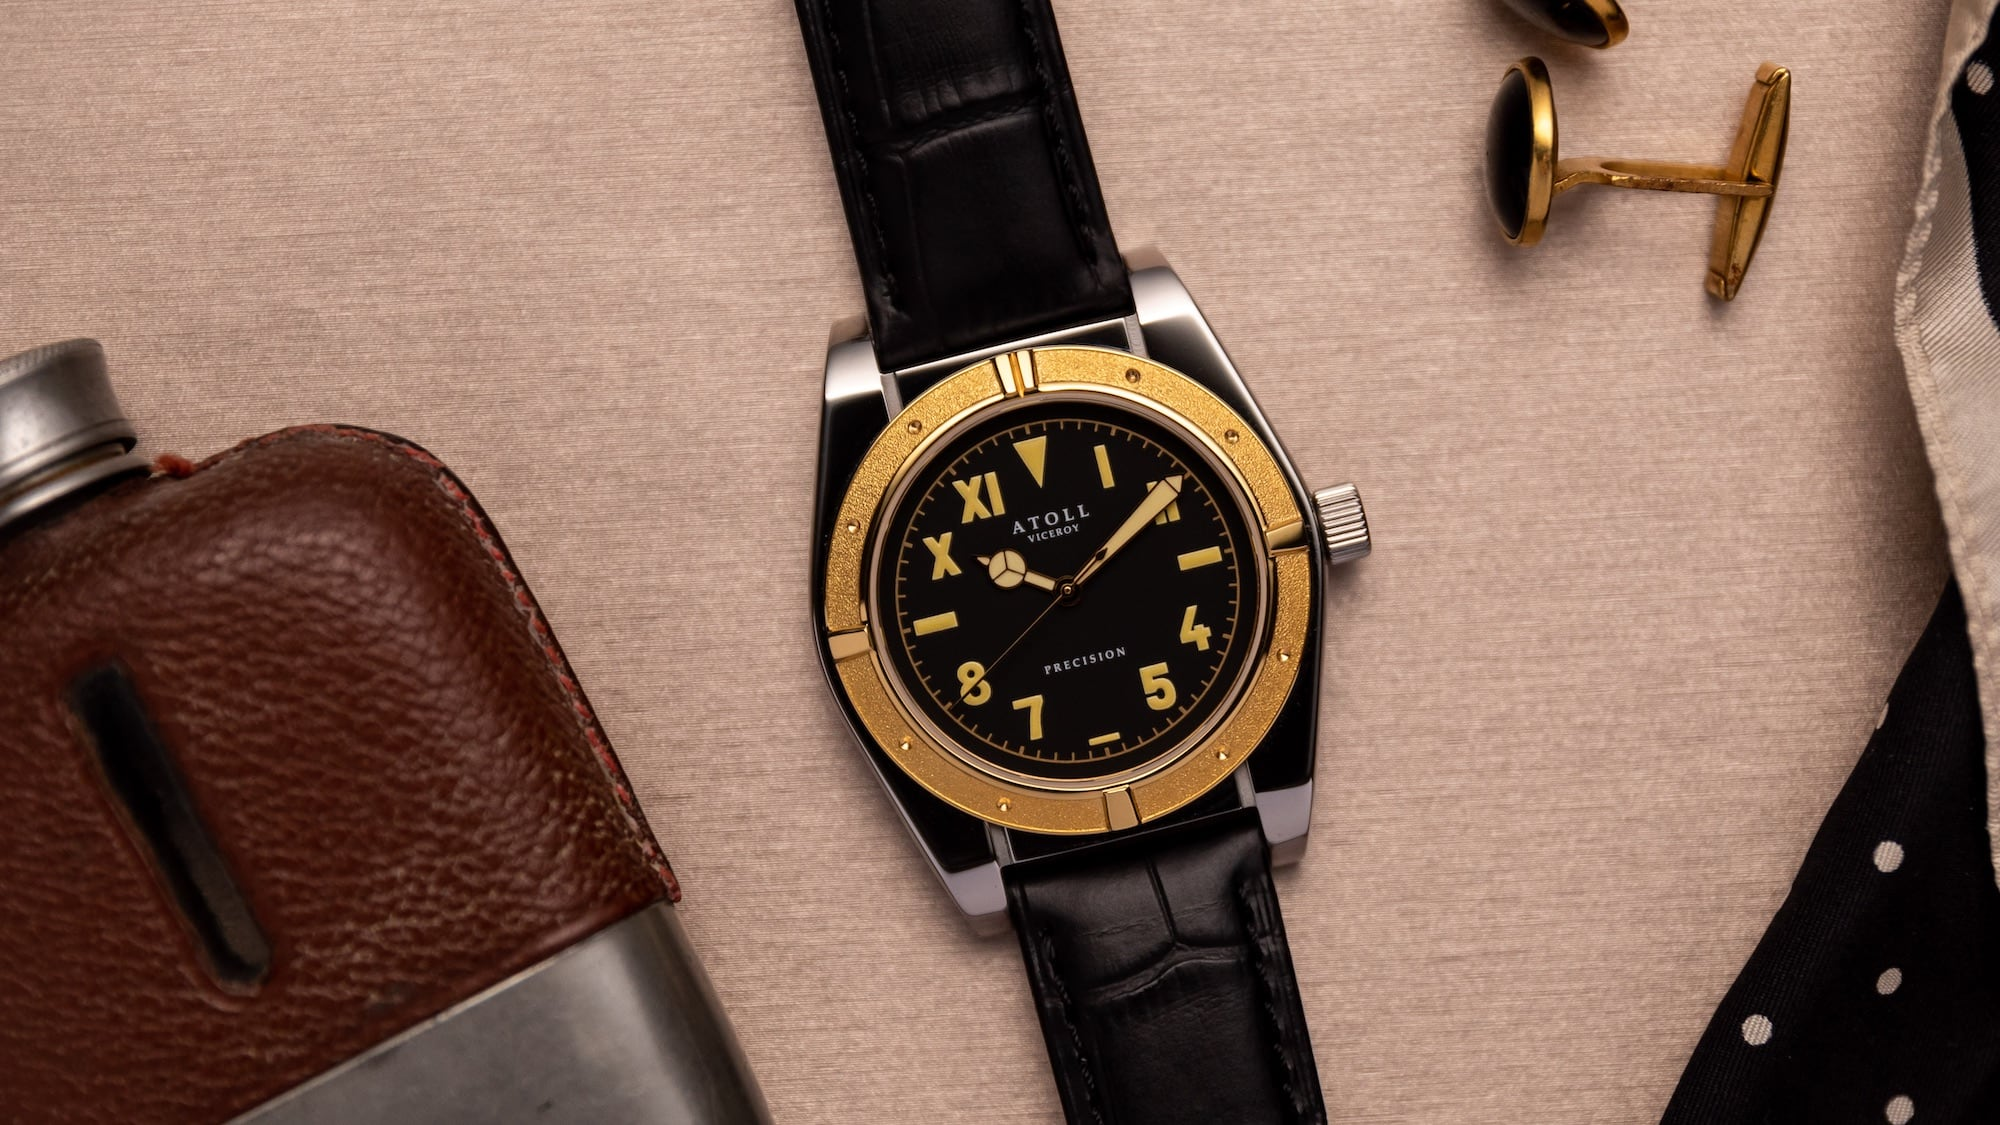 Atoll VICEROY Iconic Dress Watch